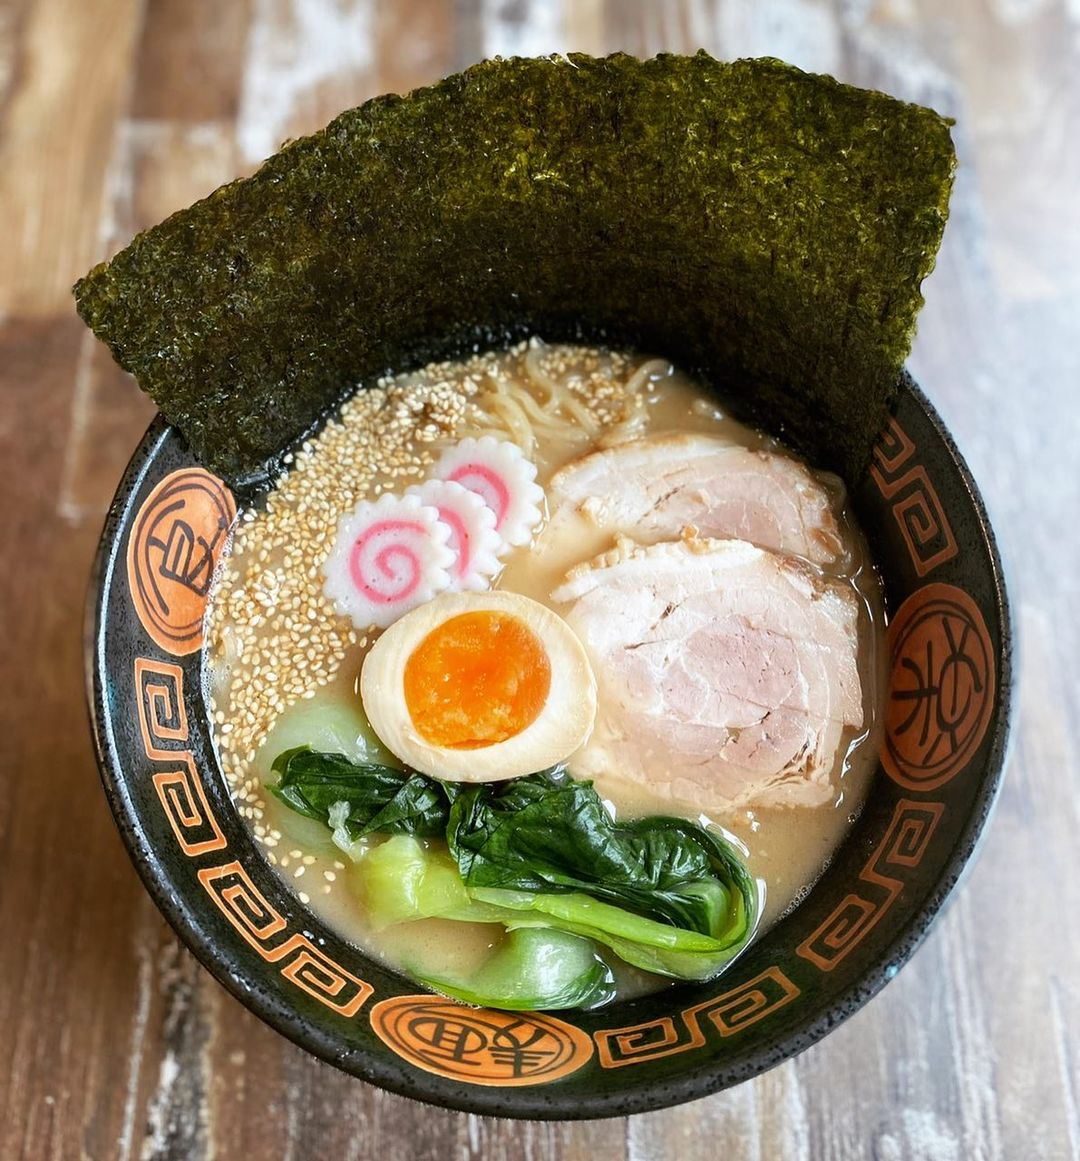 Perched in Crow's Nest, Ryo's does up some of Sydney's best ramen.